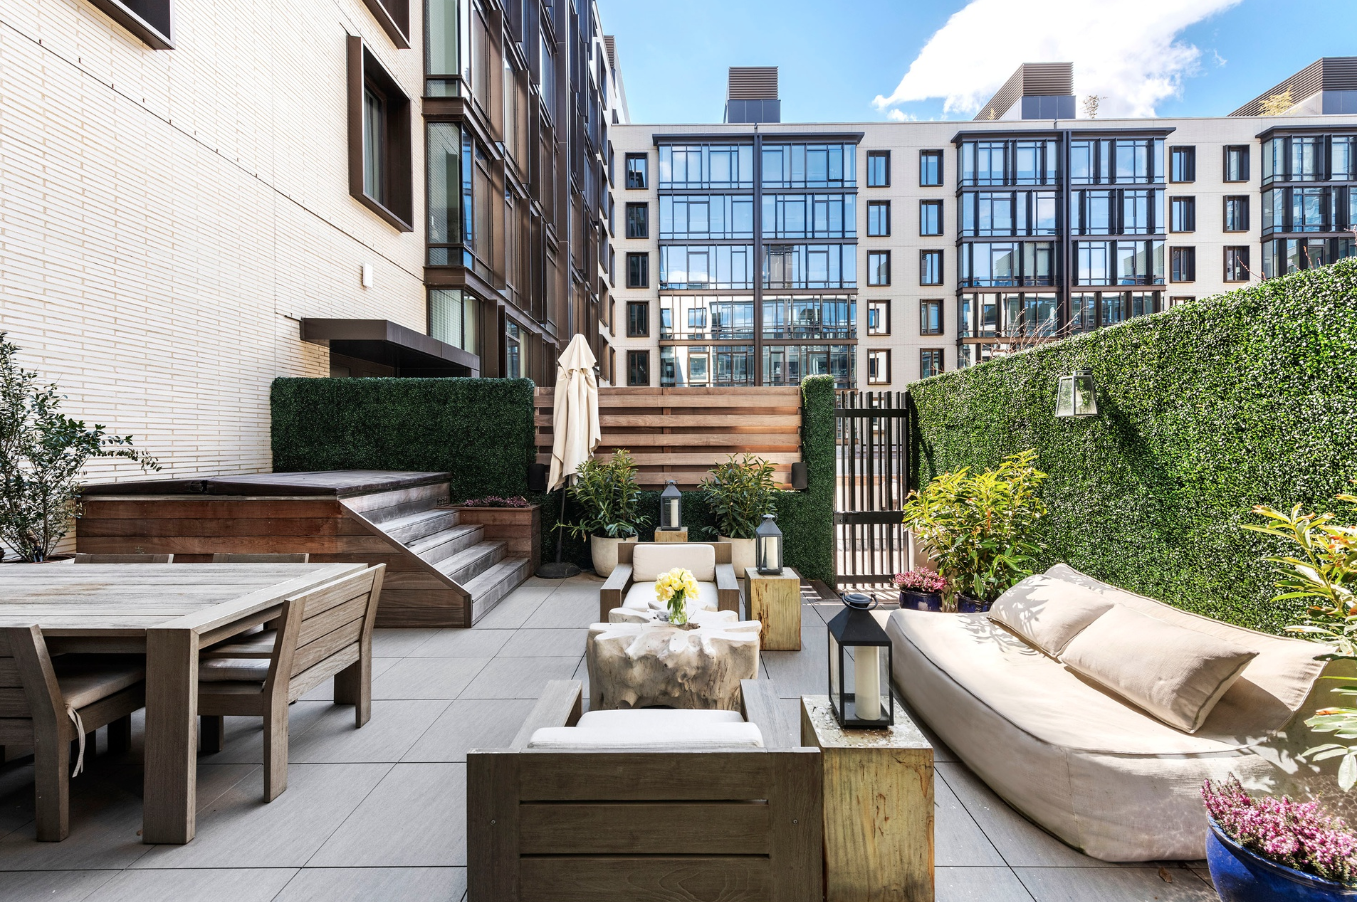 429 KENT AVENUE, TH17 - $3,500,000 // 4 Beds // 3.5 Baths // 3,115 SQFTA stunning South Williamsburg townhouse with access to white-glove condo amenities, this convertible 4-bedroom, 3.5-bathroom home is an exemplar of contemporary Brooklyn luxury. The house is 24 feet wide and has 3,115 sq. ft. of interior space, and it has been upgraded with a curated selection of custom fixtures, finishes, and technology.